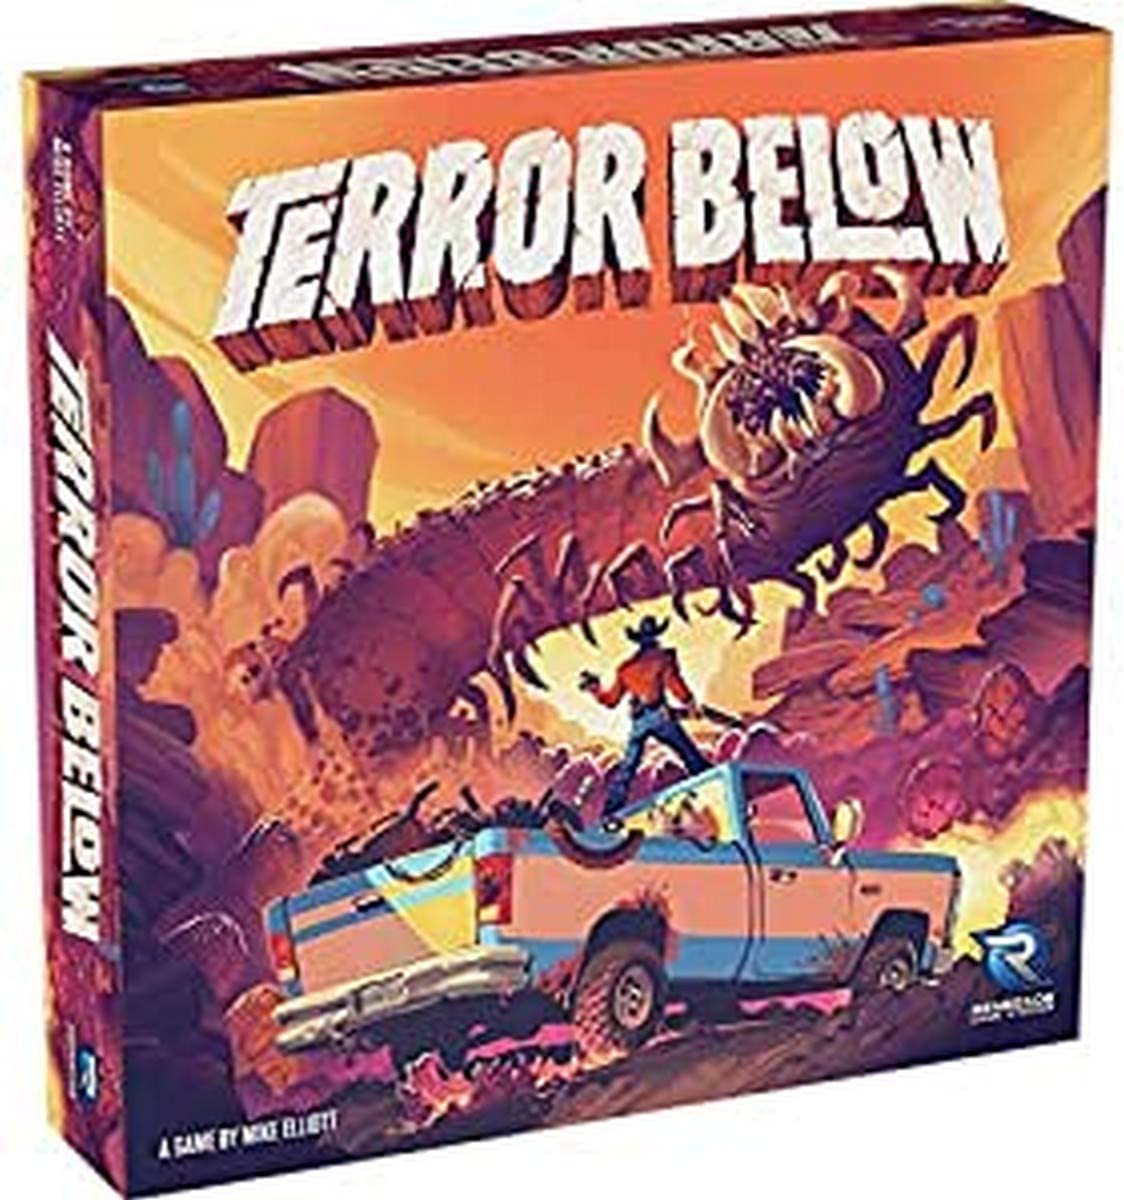 Renegade Game Studios Terror Below Board Game, Worms are Attracted The Faster You Move, Collect Worm Eggs to Claim Bounties, 2-5 Players, Ages 10 and Up, 45 - 60 Min Playing Time